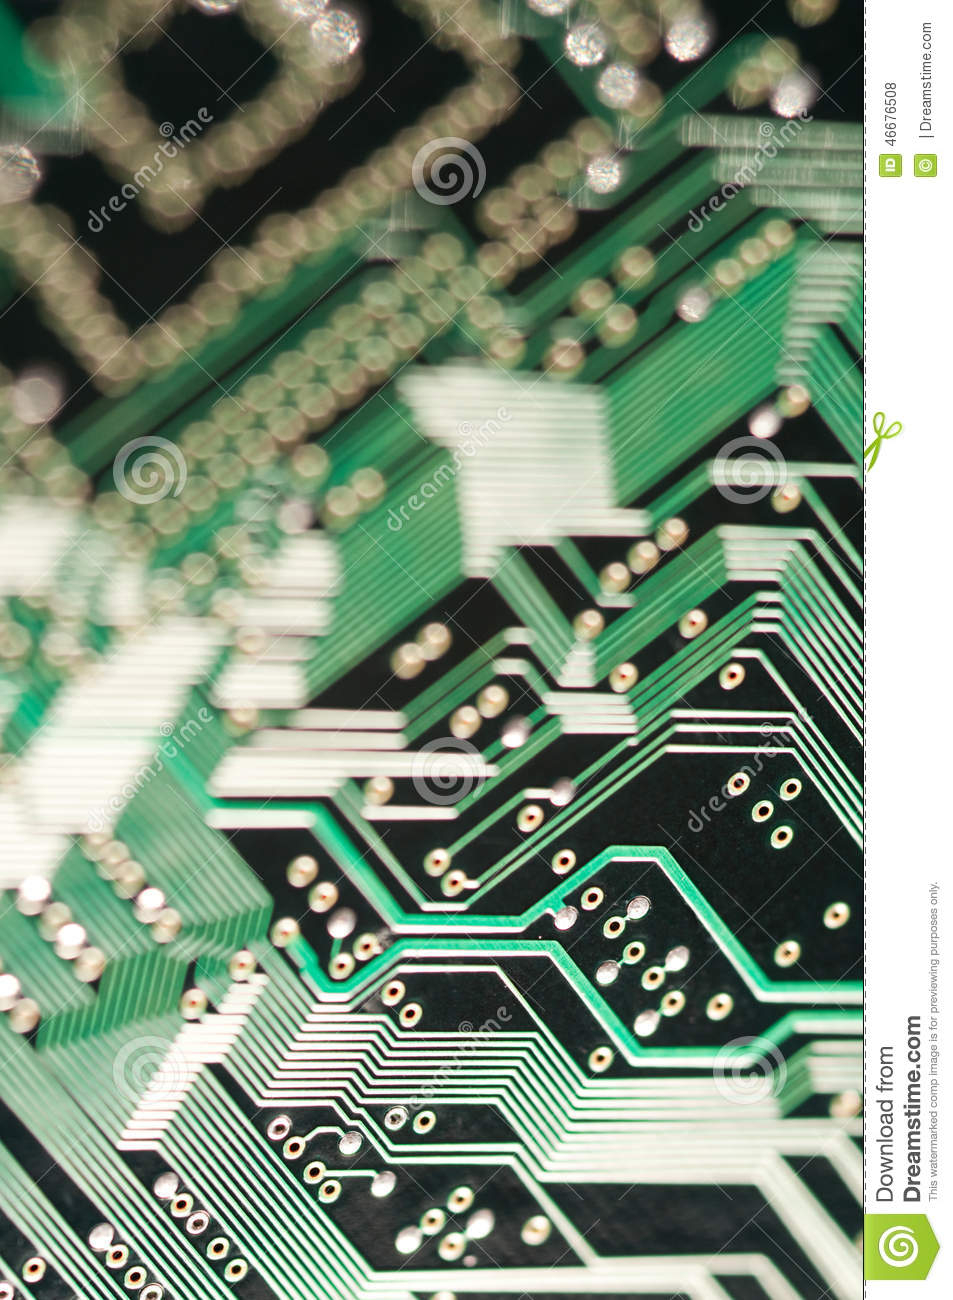 Macro of electronic circuit board pcb in green